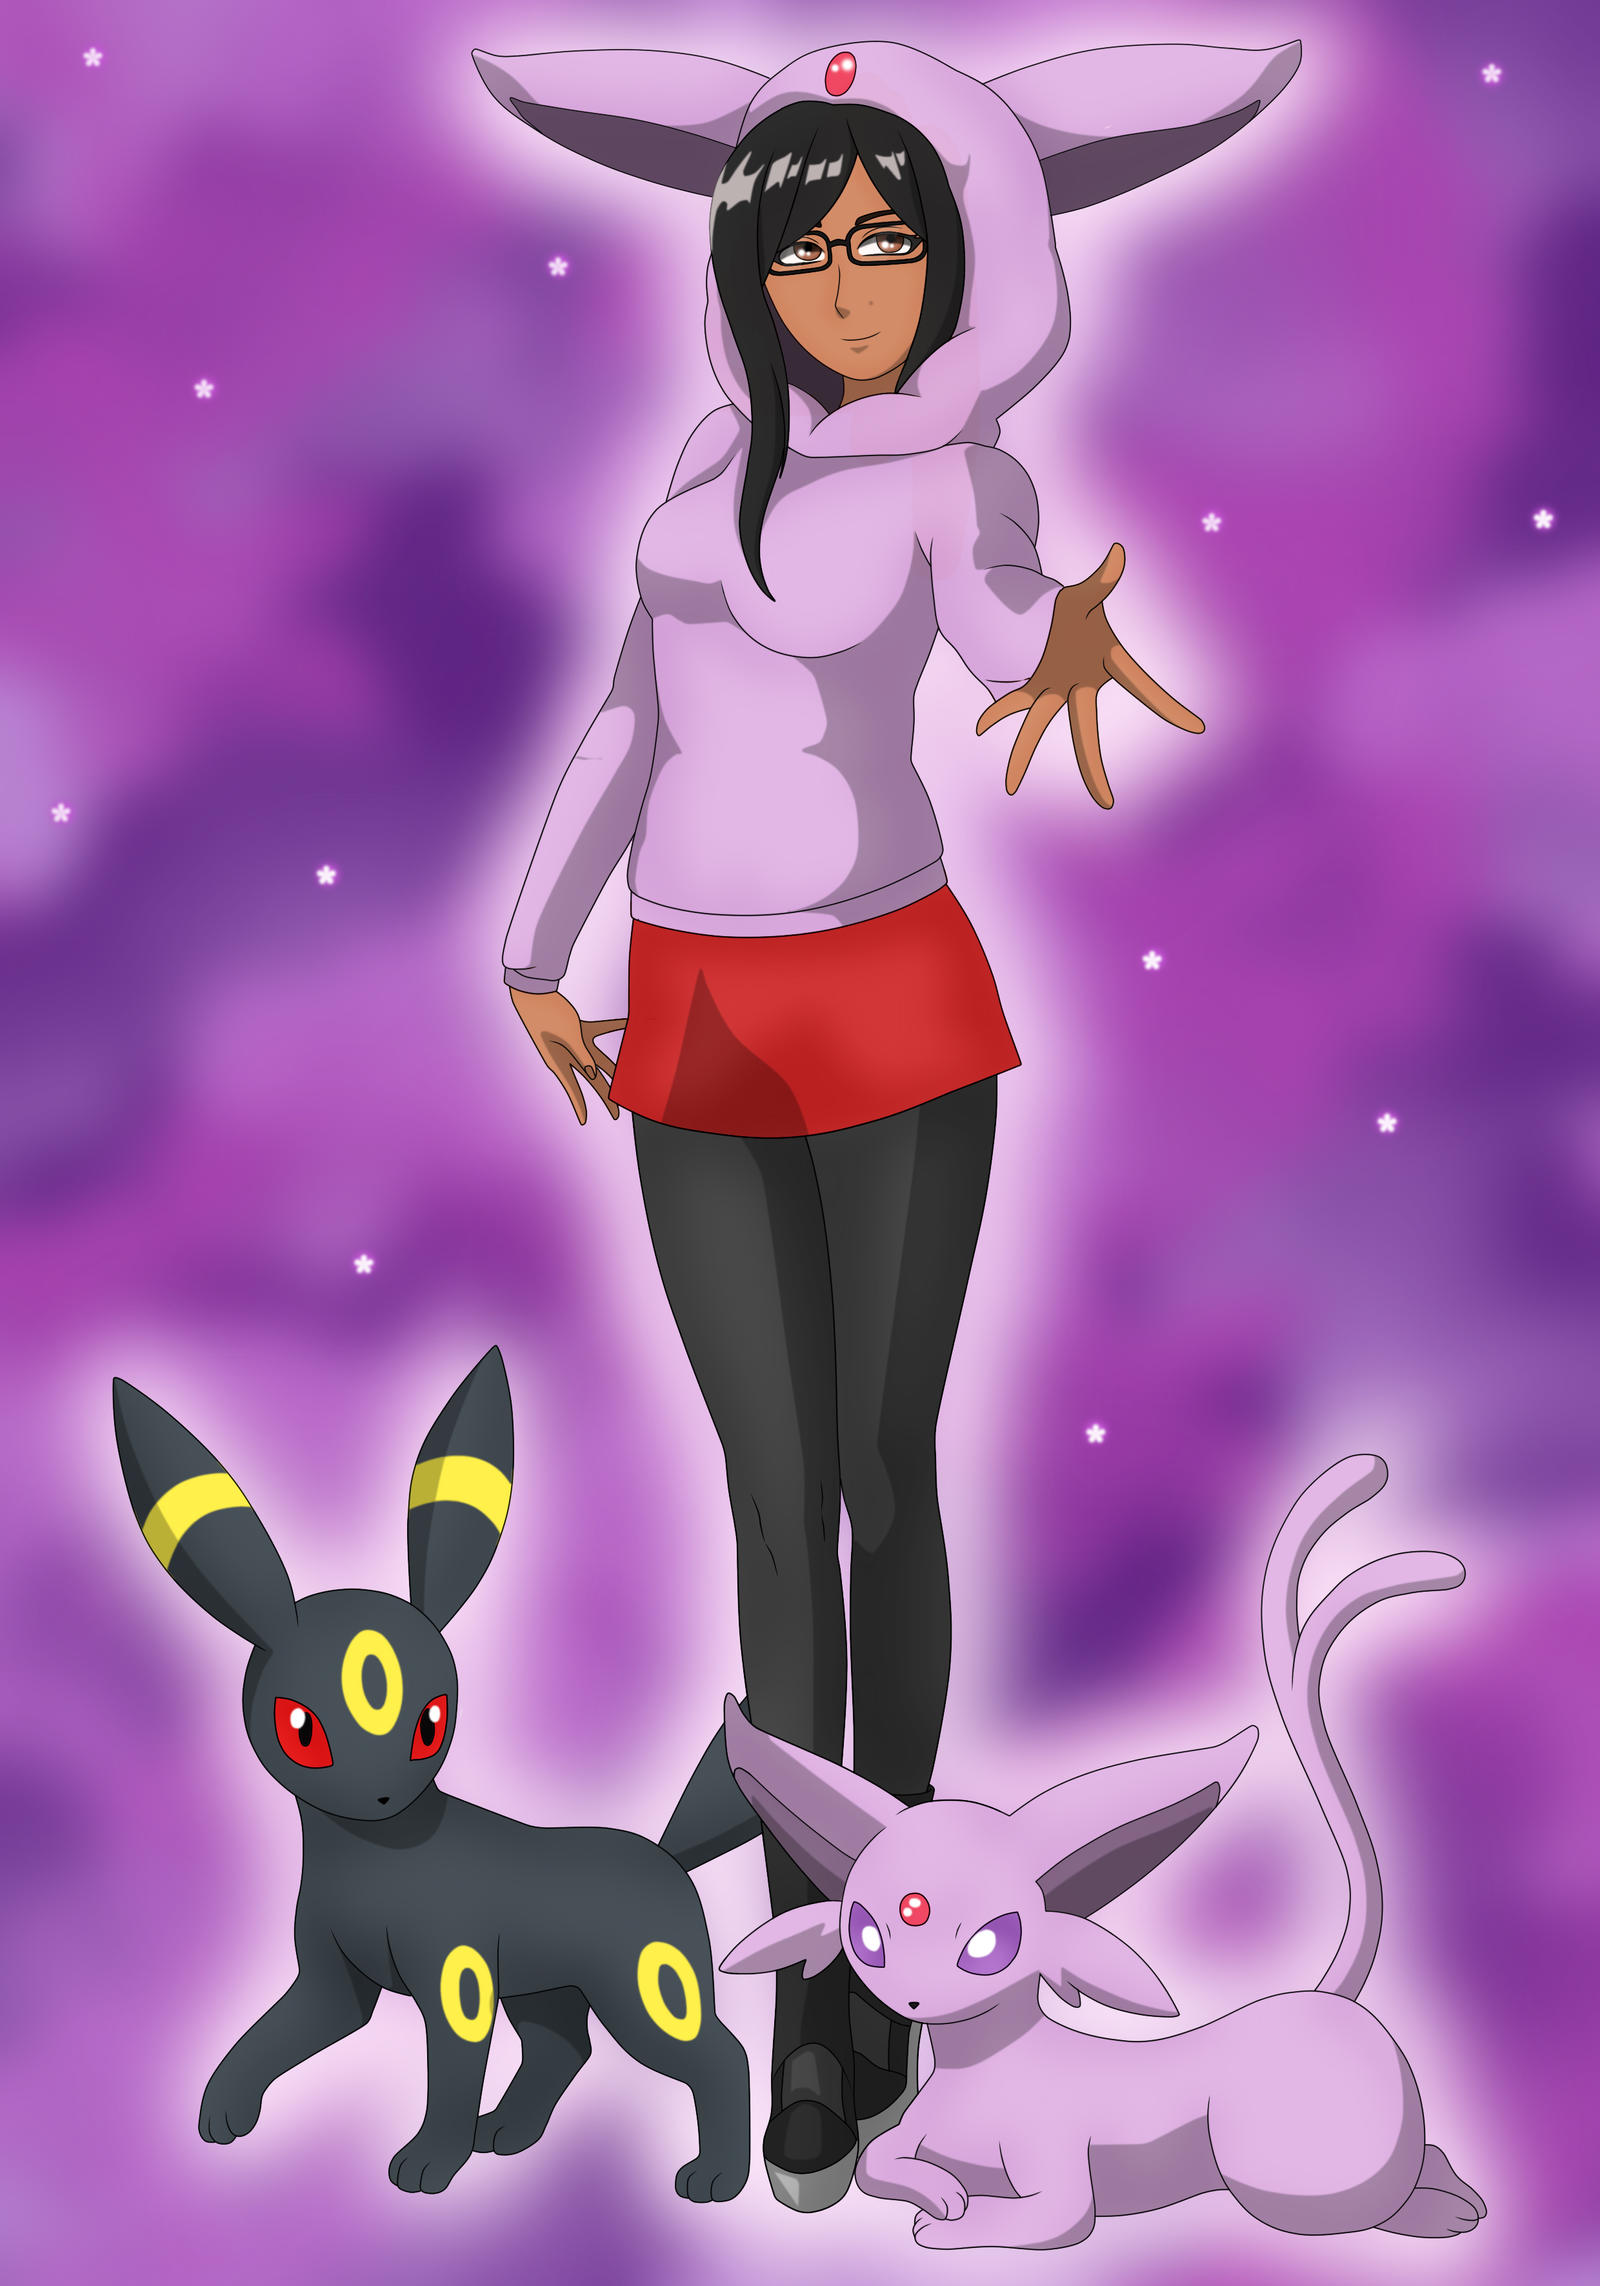 Espeon and Umbreon by AE-Viatrix on DeviantArt